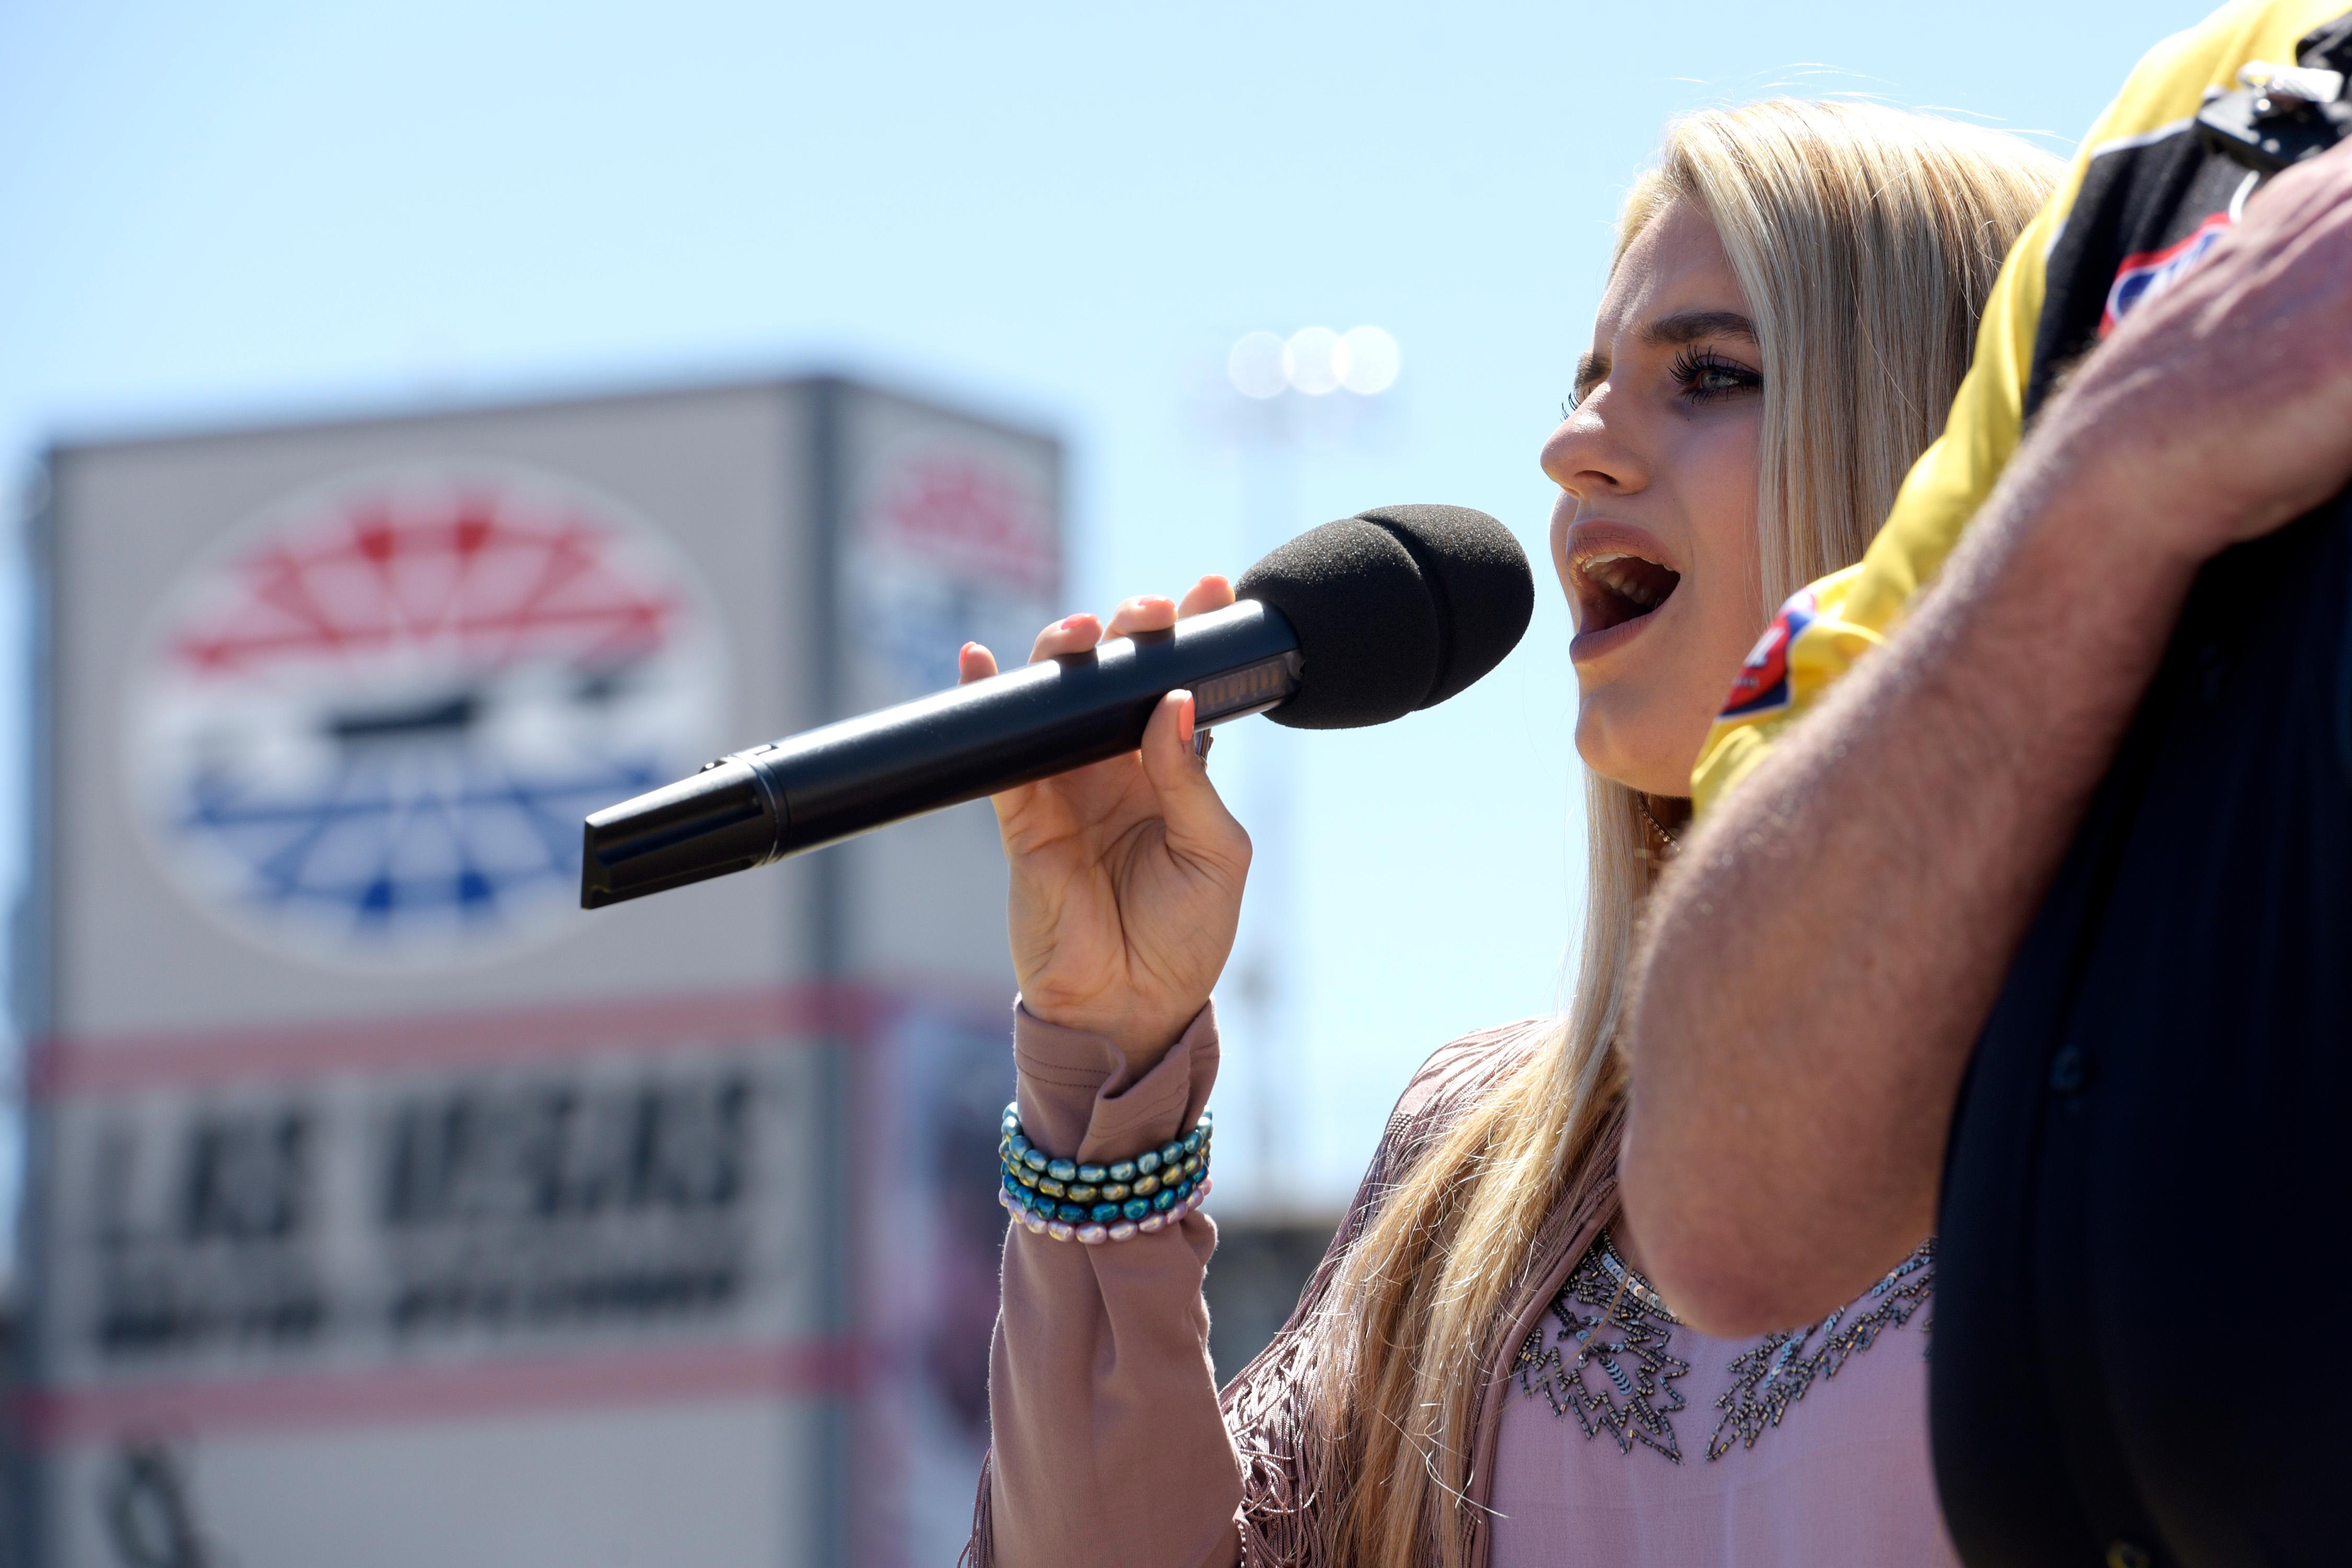 Siena Paglia sings the national anthem during the NHRA DENSO Spark Plug Nationals at The Strip at the Las Vegas Motor Speedway Sunday, April 2, 2017. (Sam Morris/Las Vegas News Bureau)